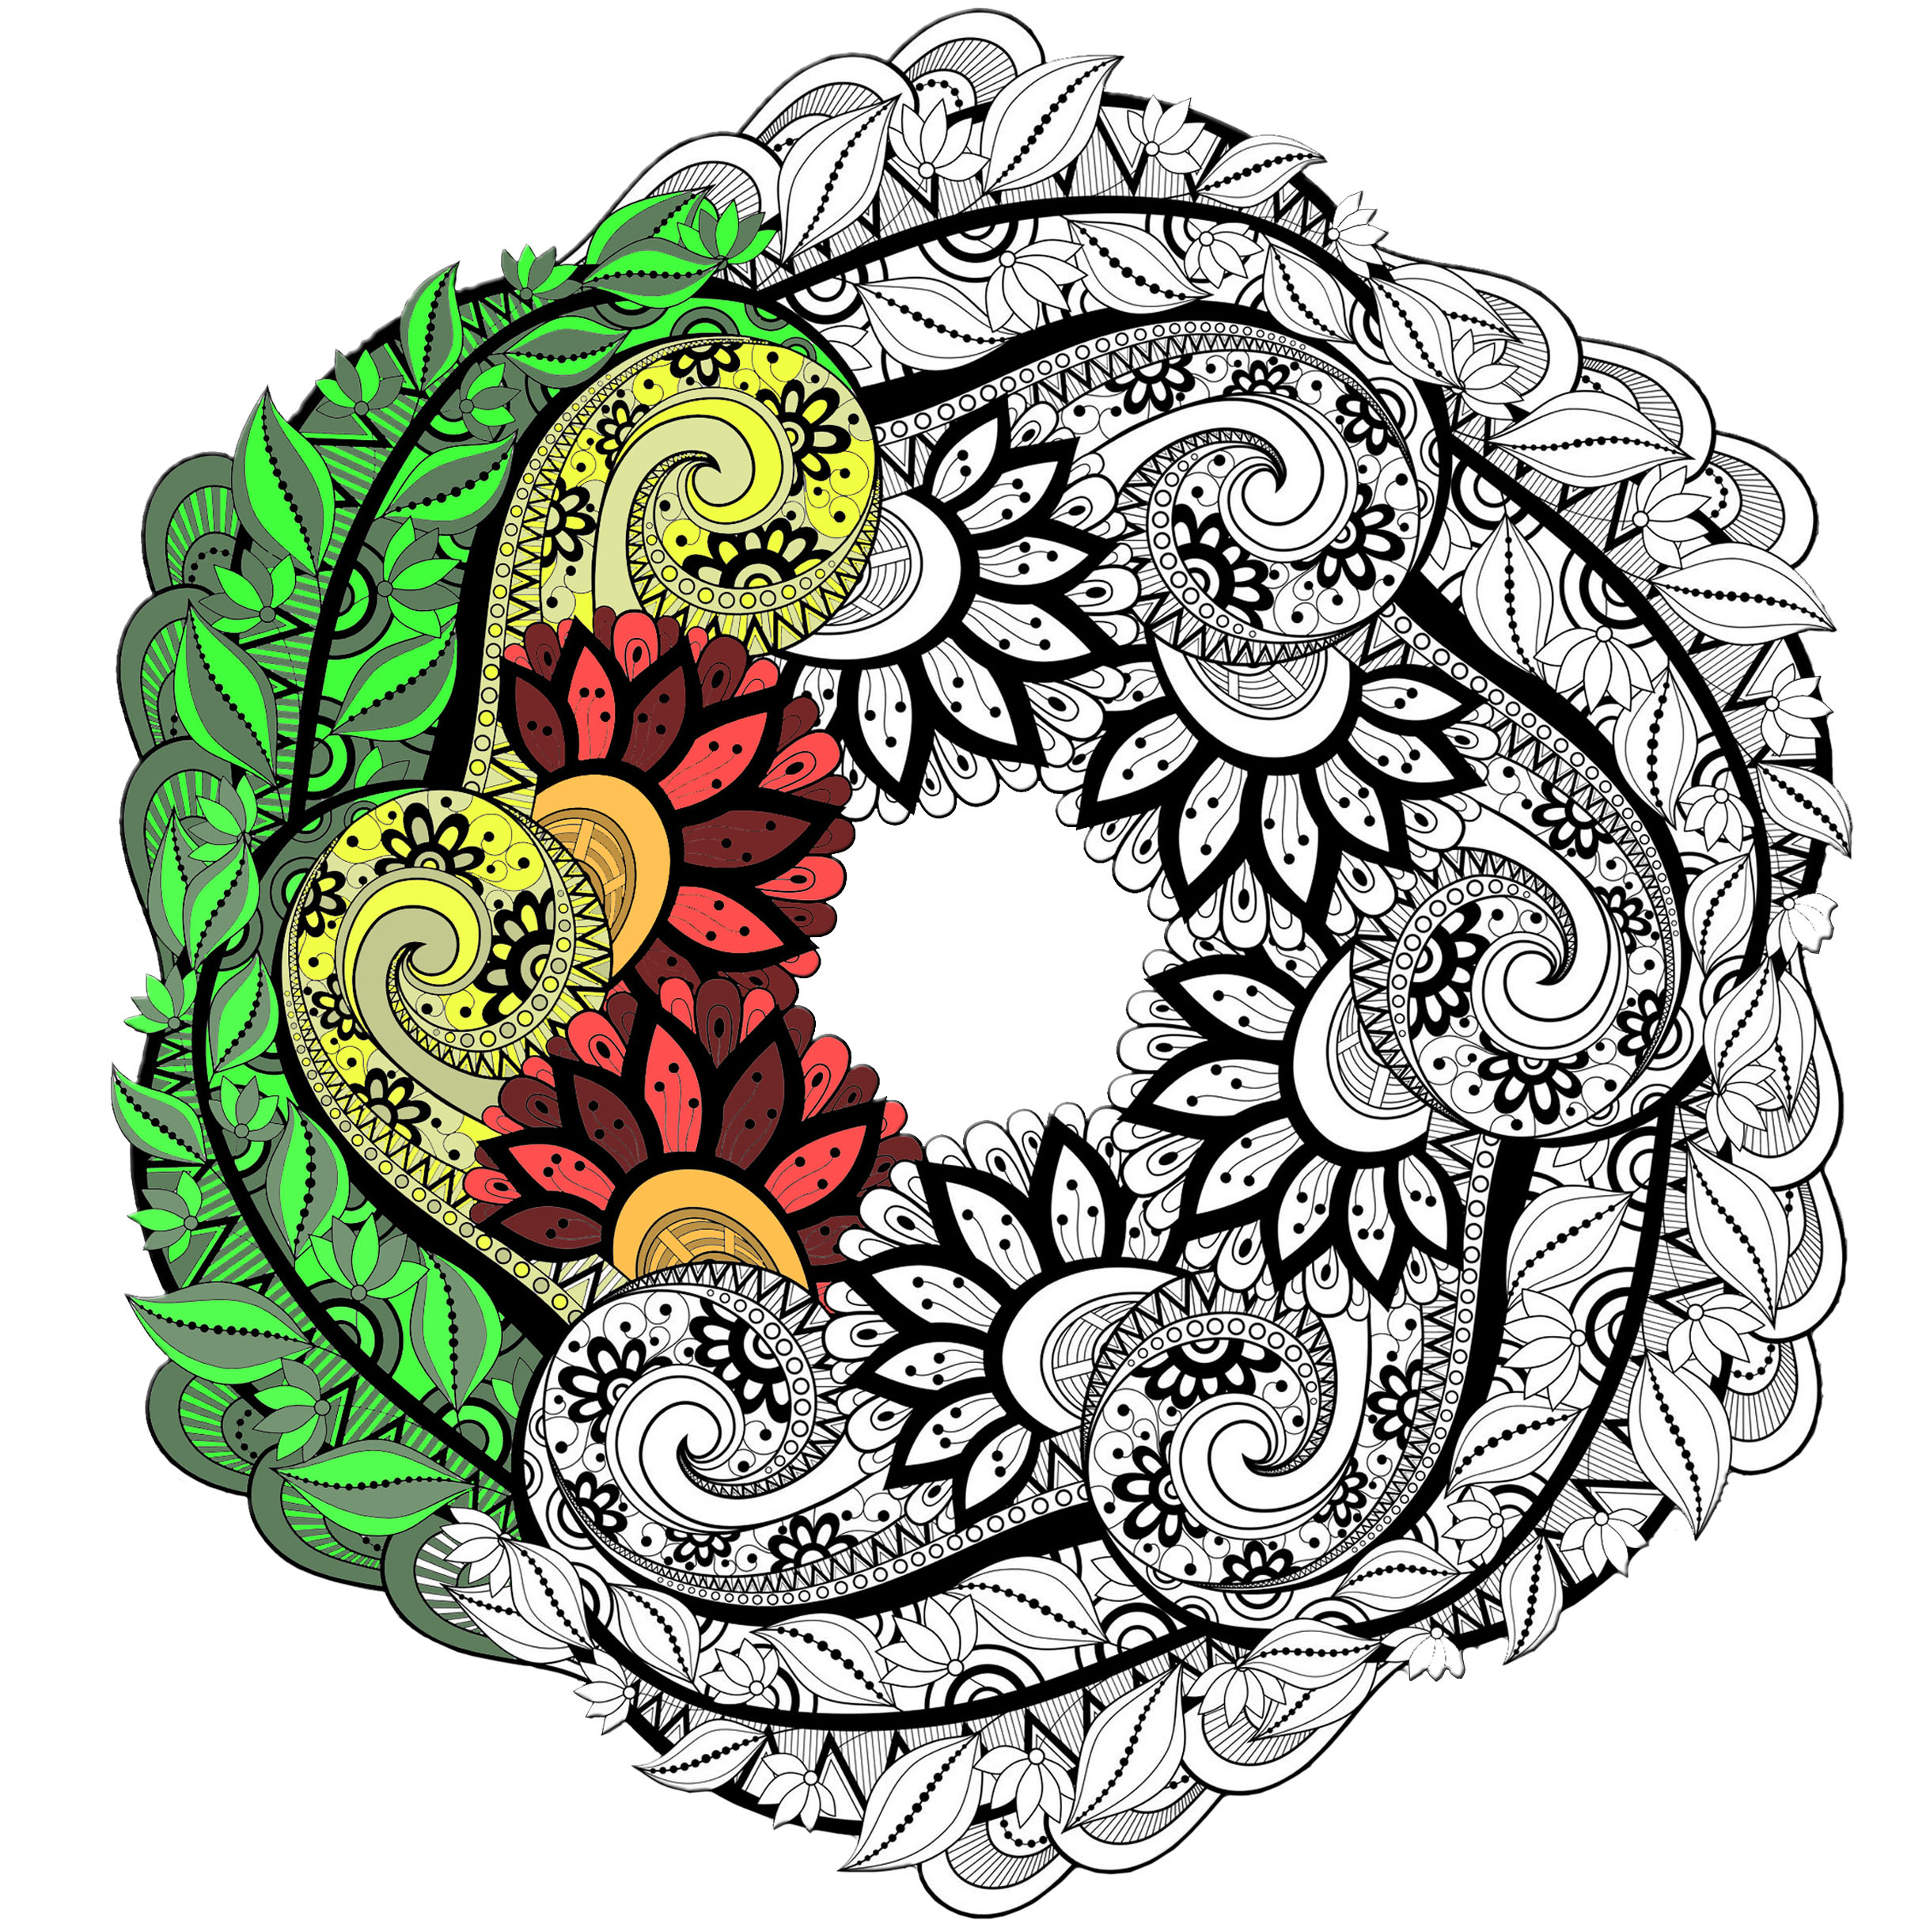 como hacer mandalas pasos sencillos besides printable coloring pages for adults abstract 1 on printable coloring pages for adults abstract as well as print coloring pages for kids on printable coloring pages for adults abstract as well as printable coloring pages for adults abstract 3 on printable coloring pages for adults abstract along with printable coloring pages for adults abstract 4 on printable coloring pages for adults abstract